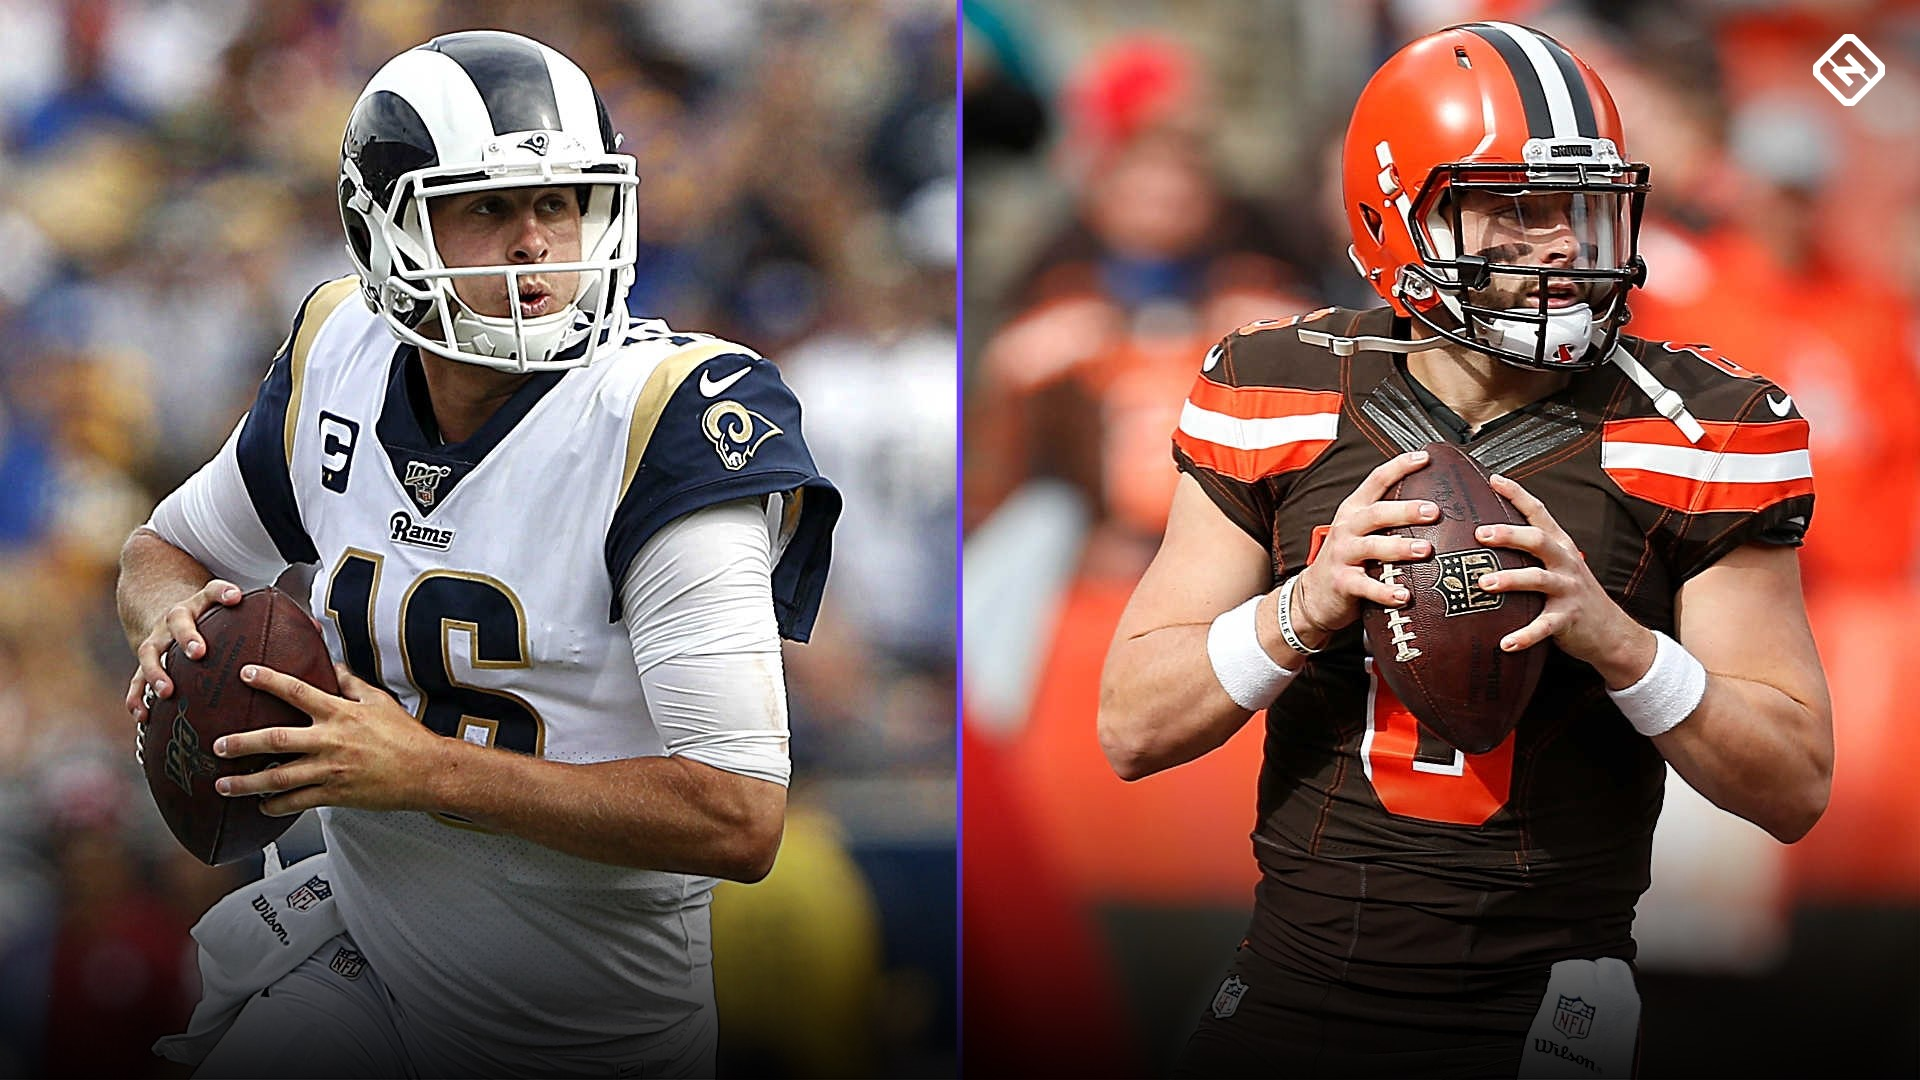 Rams vs. Browns odds, prediction, betting trends for 'Sunday Night Football'